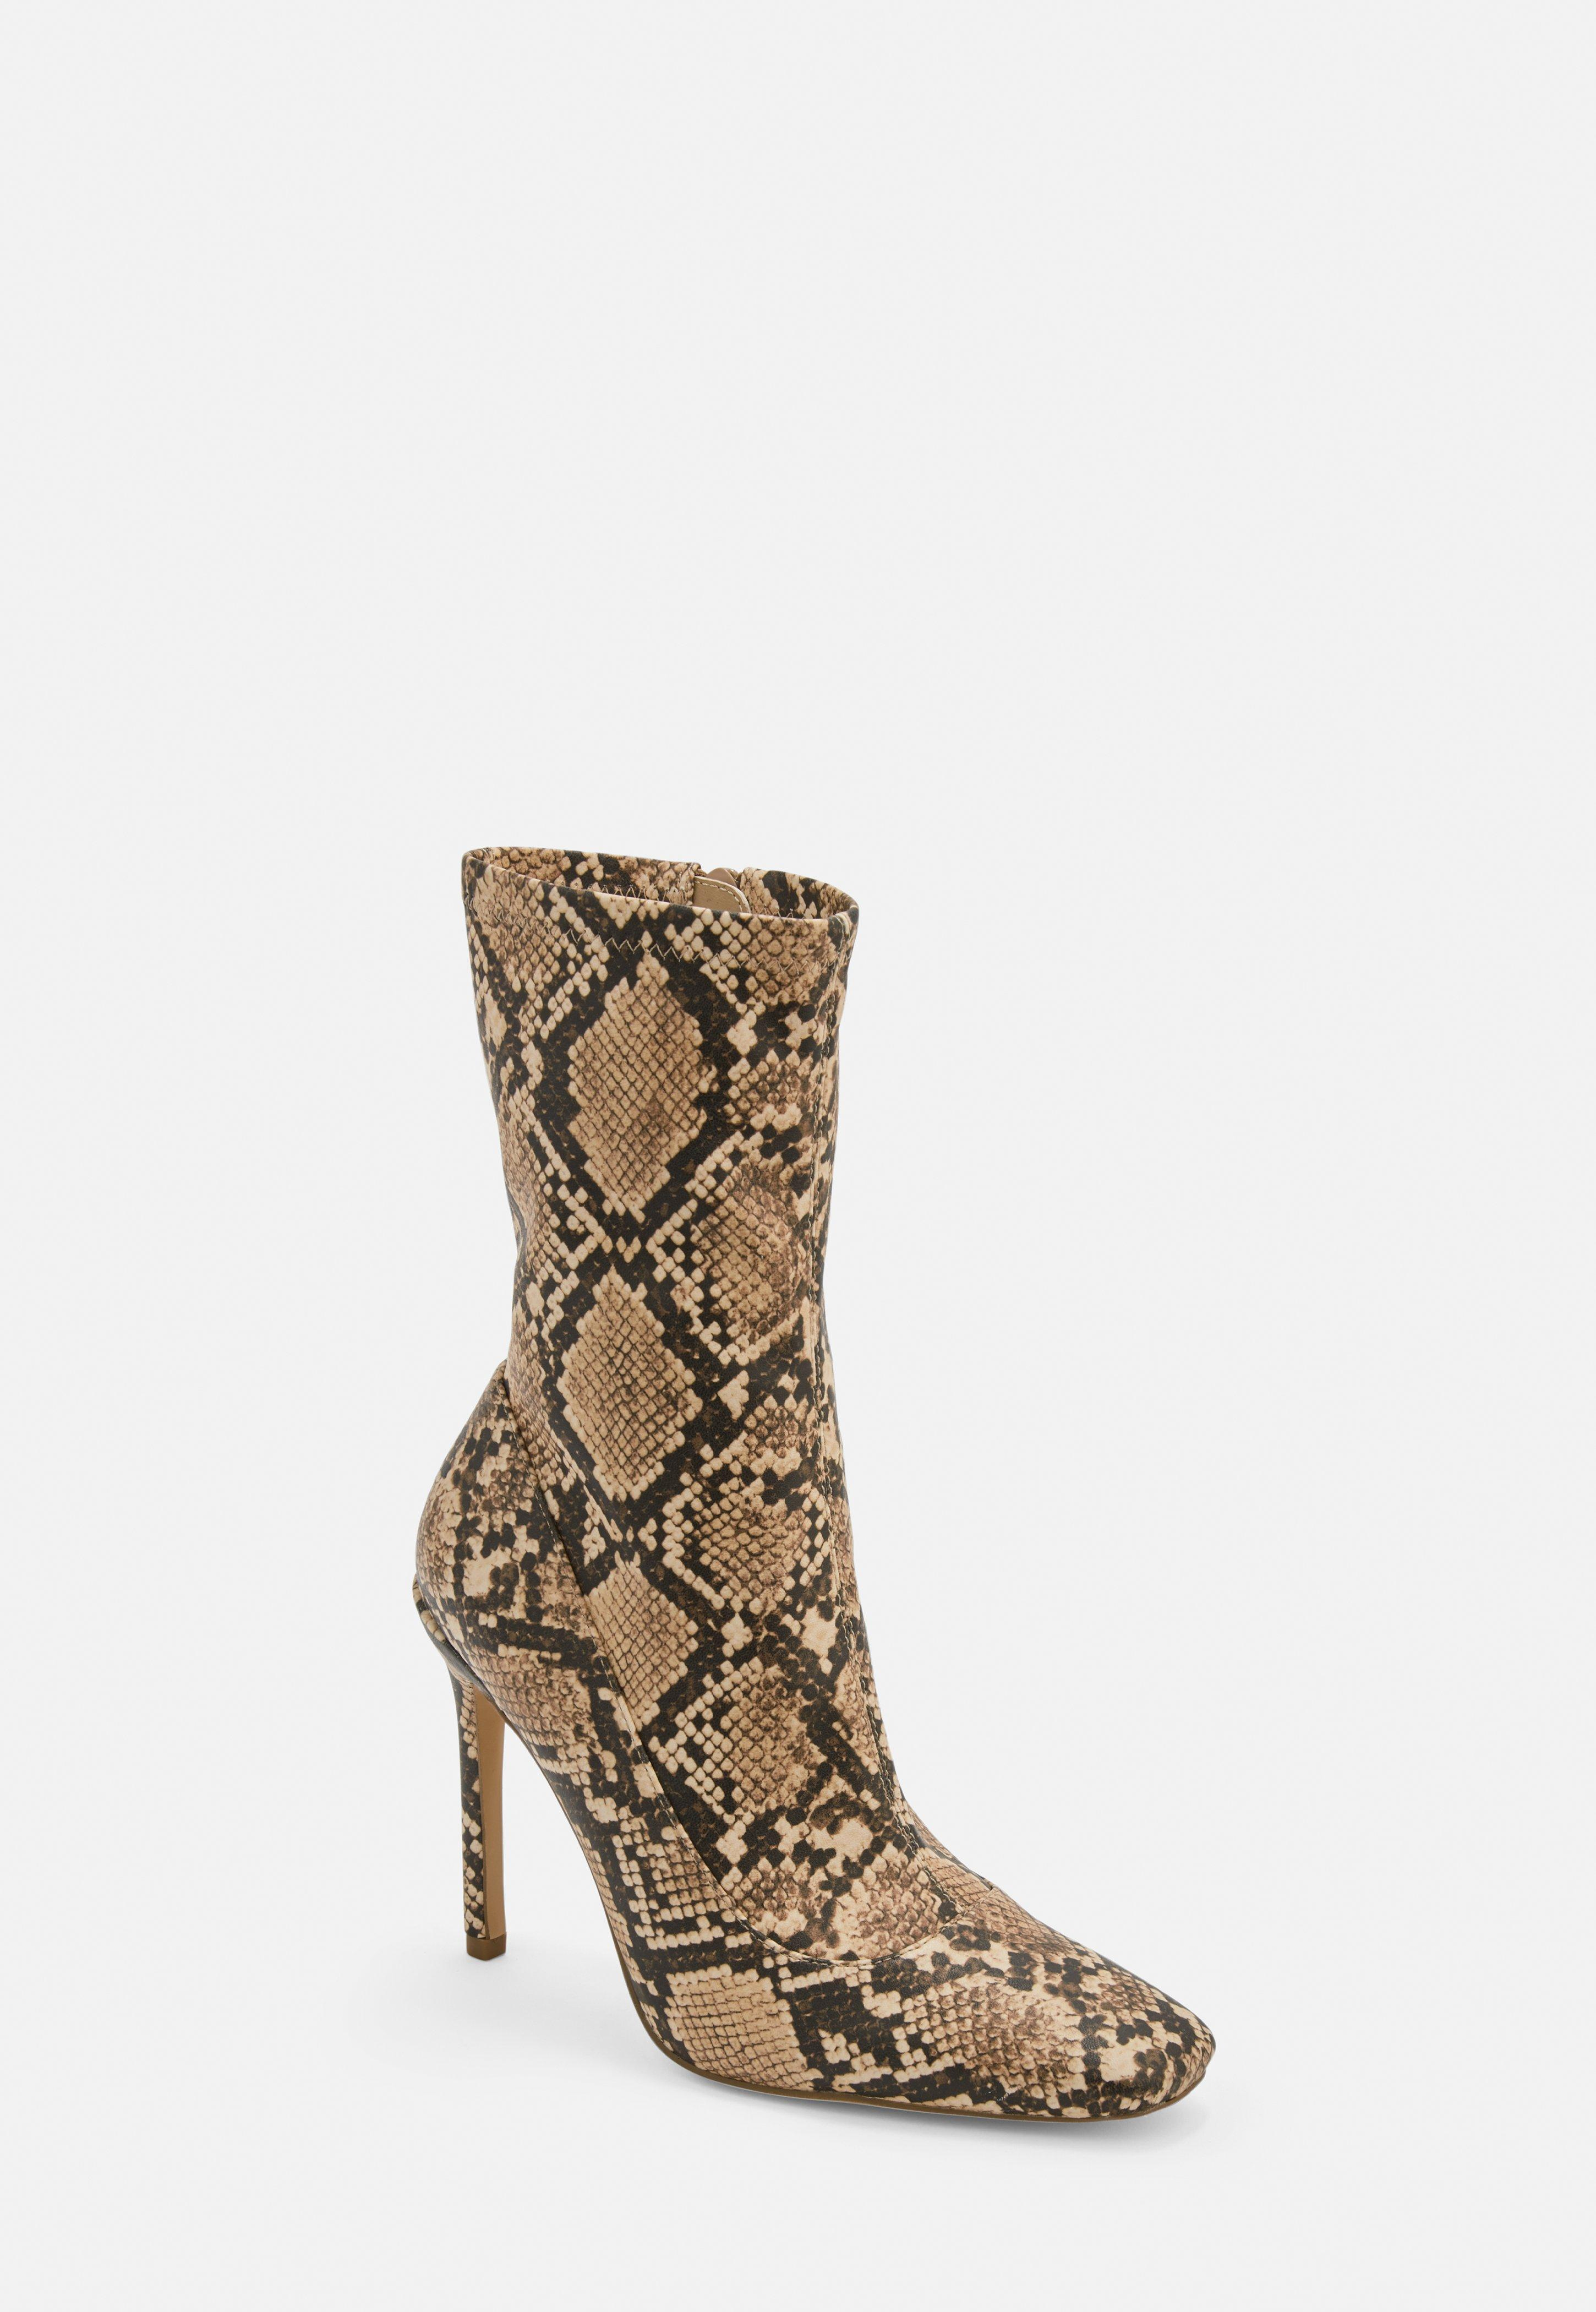 8145645eebe Nude Snake Print Square Toe Stiletto Heel Boots